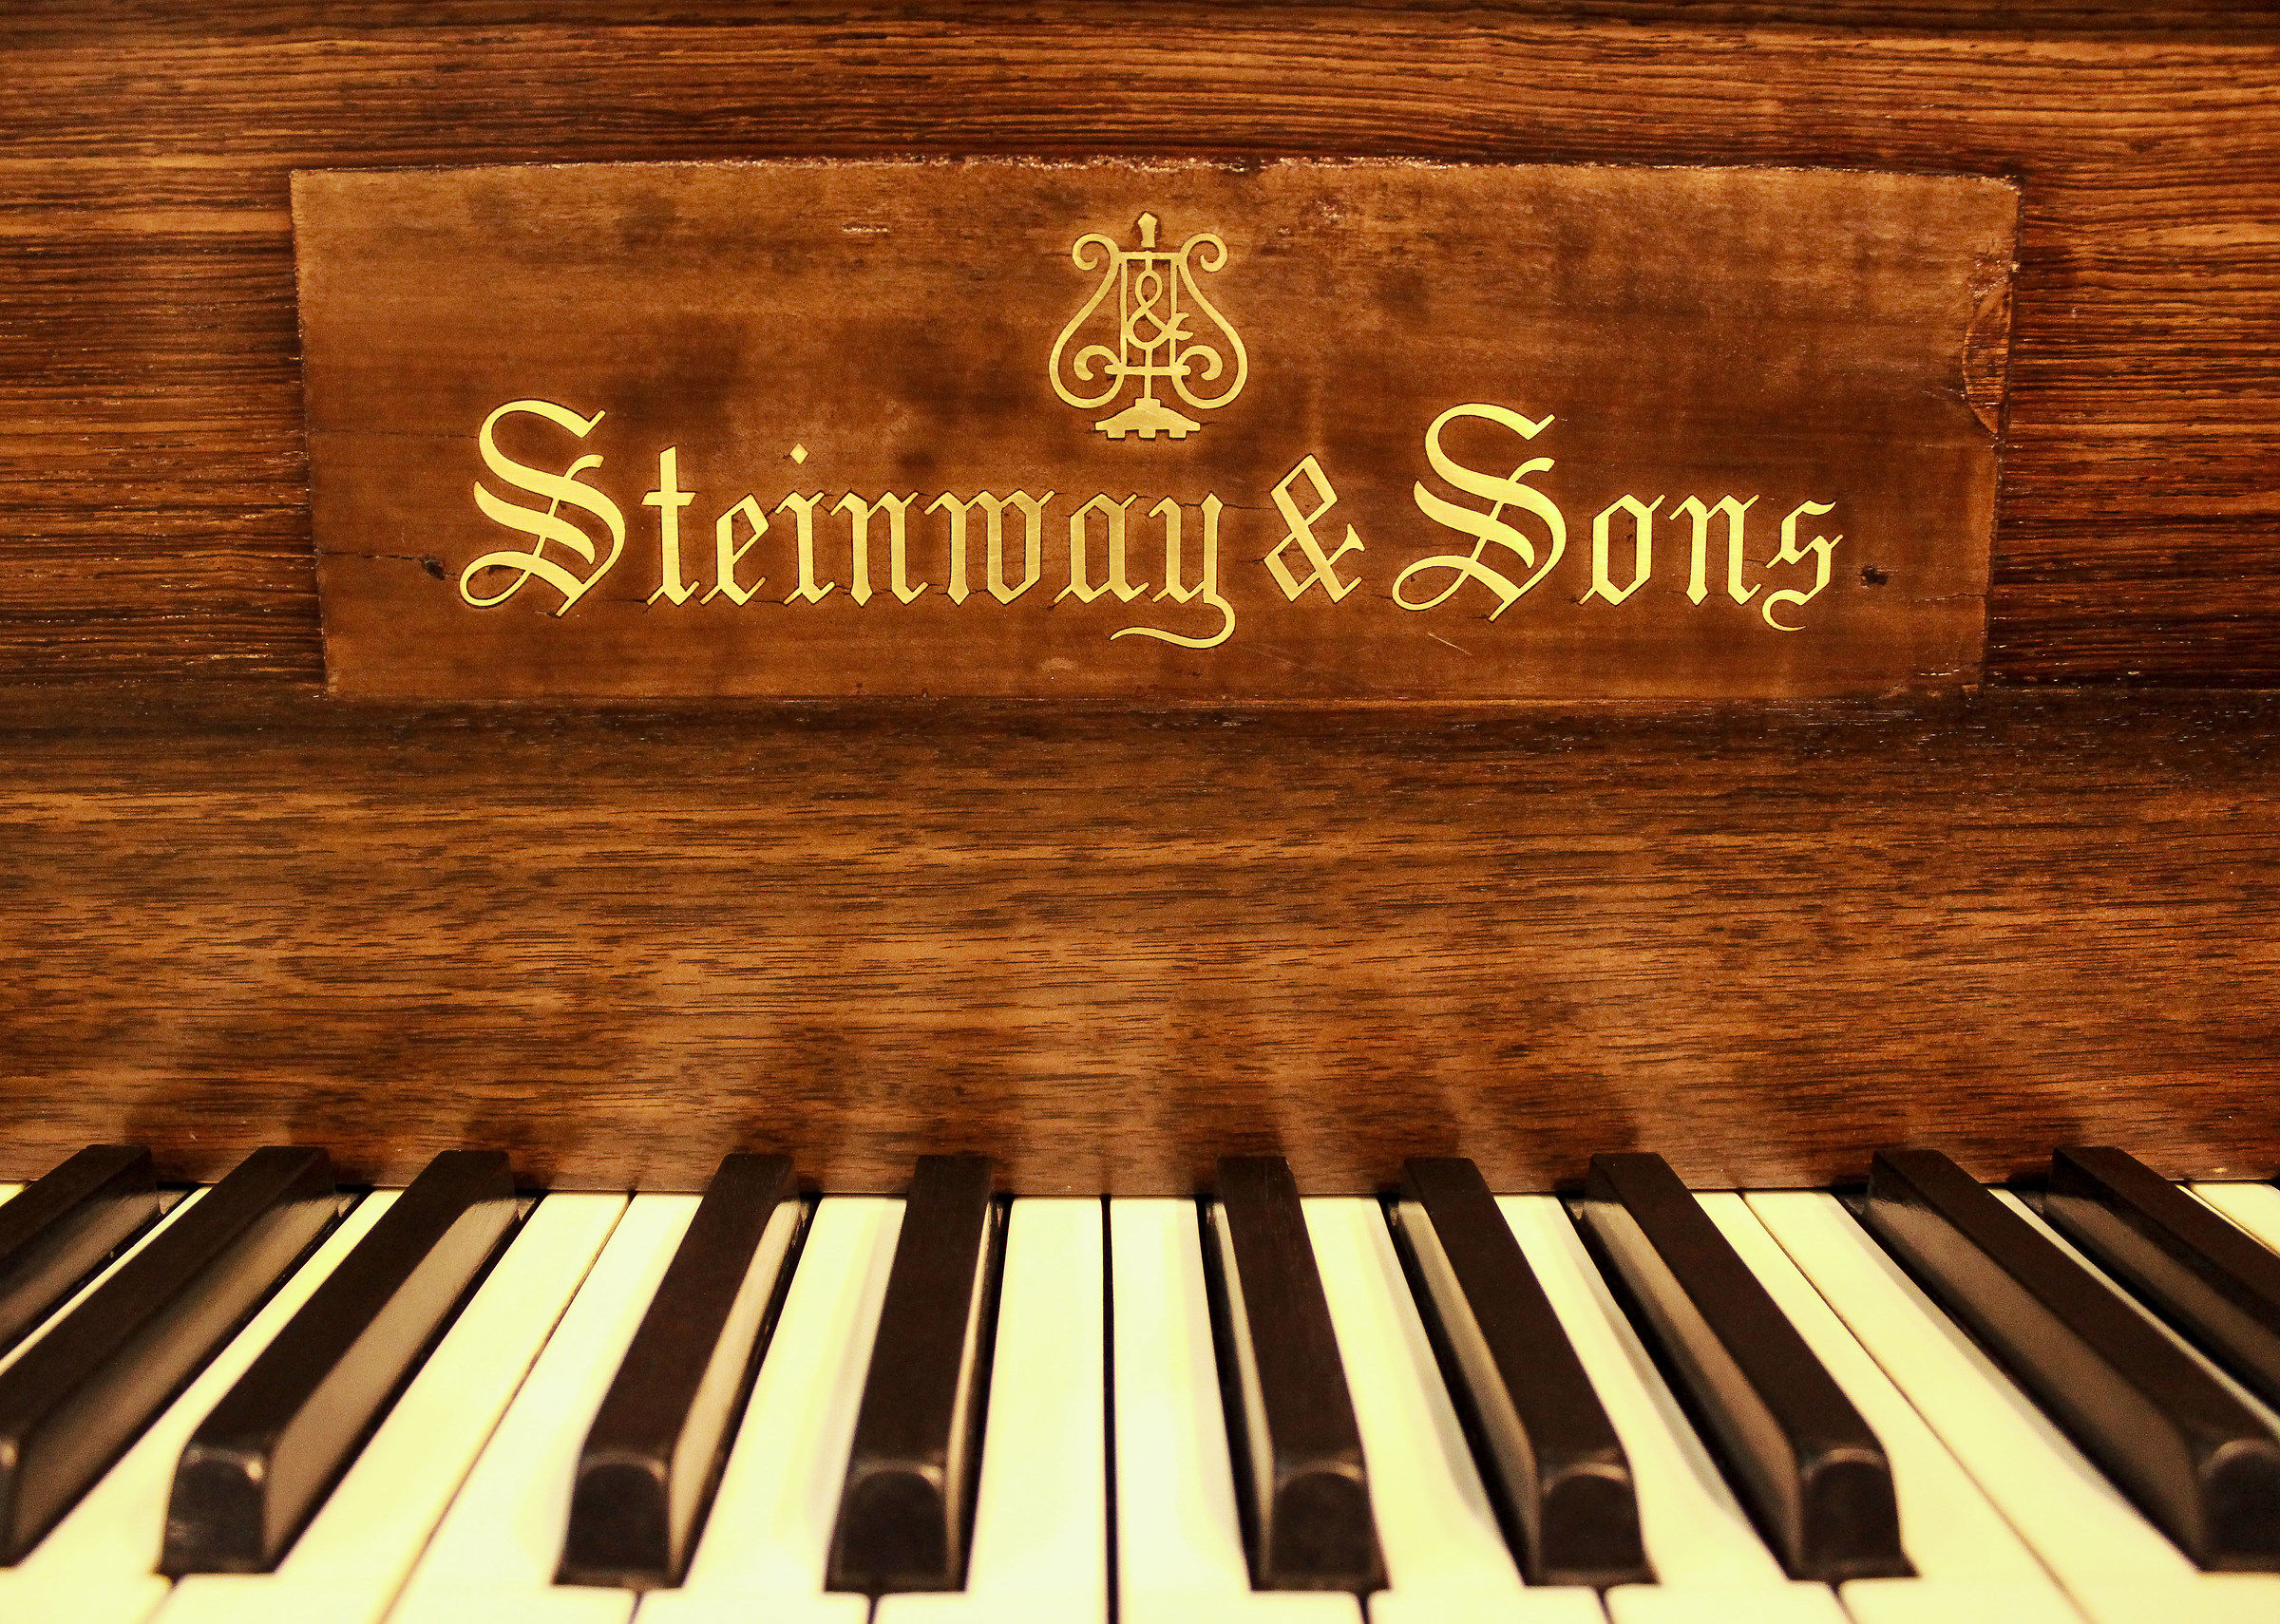 Steinway and Sons...